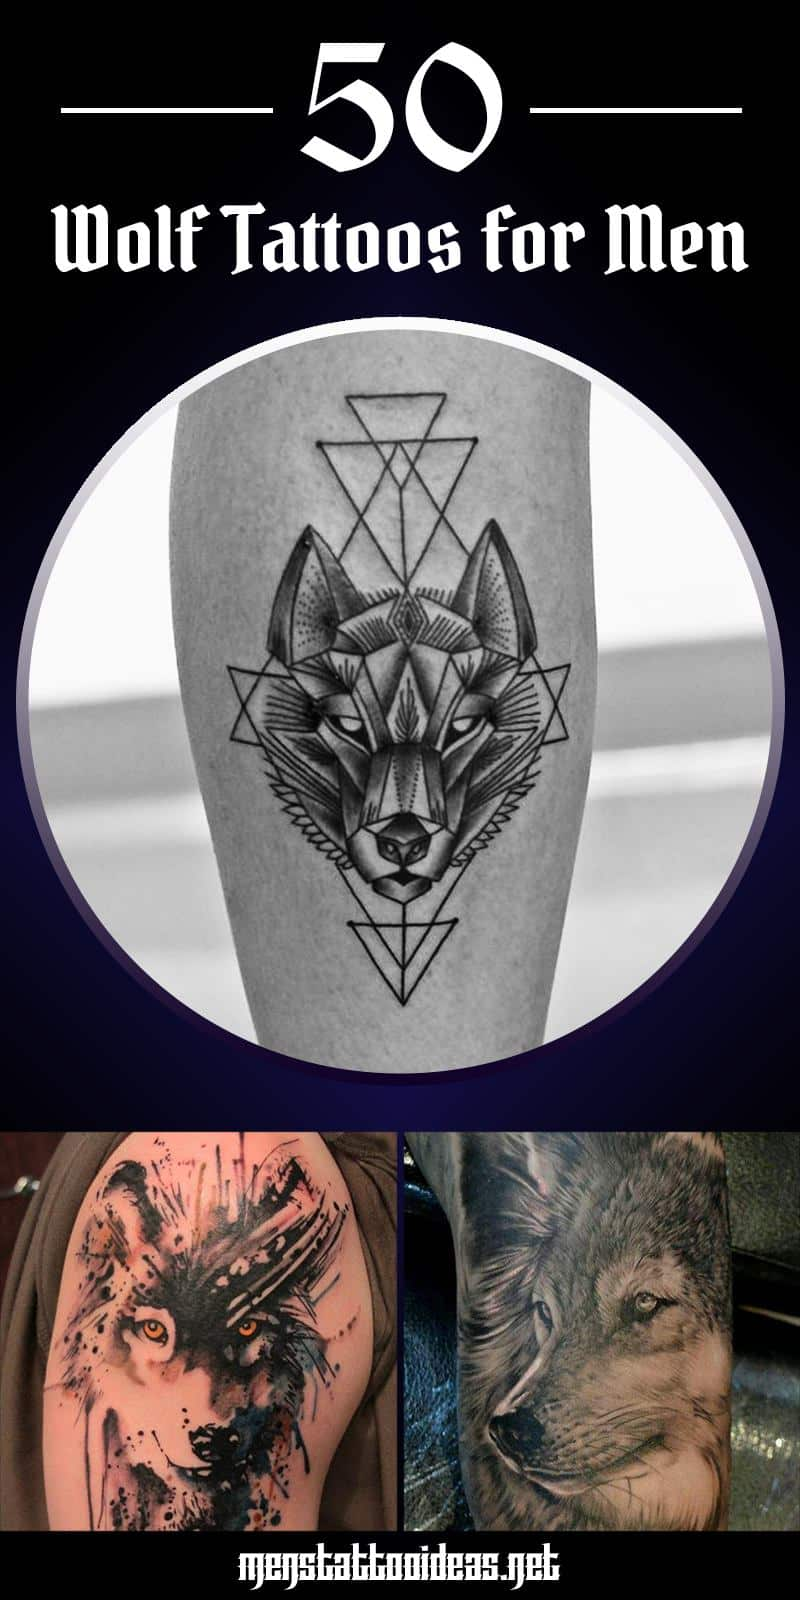 ebd9be2b8e56b Wolf Tattoos for Men - Ideas and Inspiration for guys